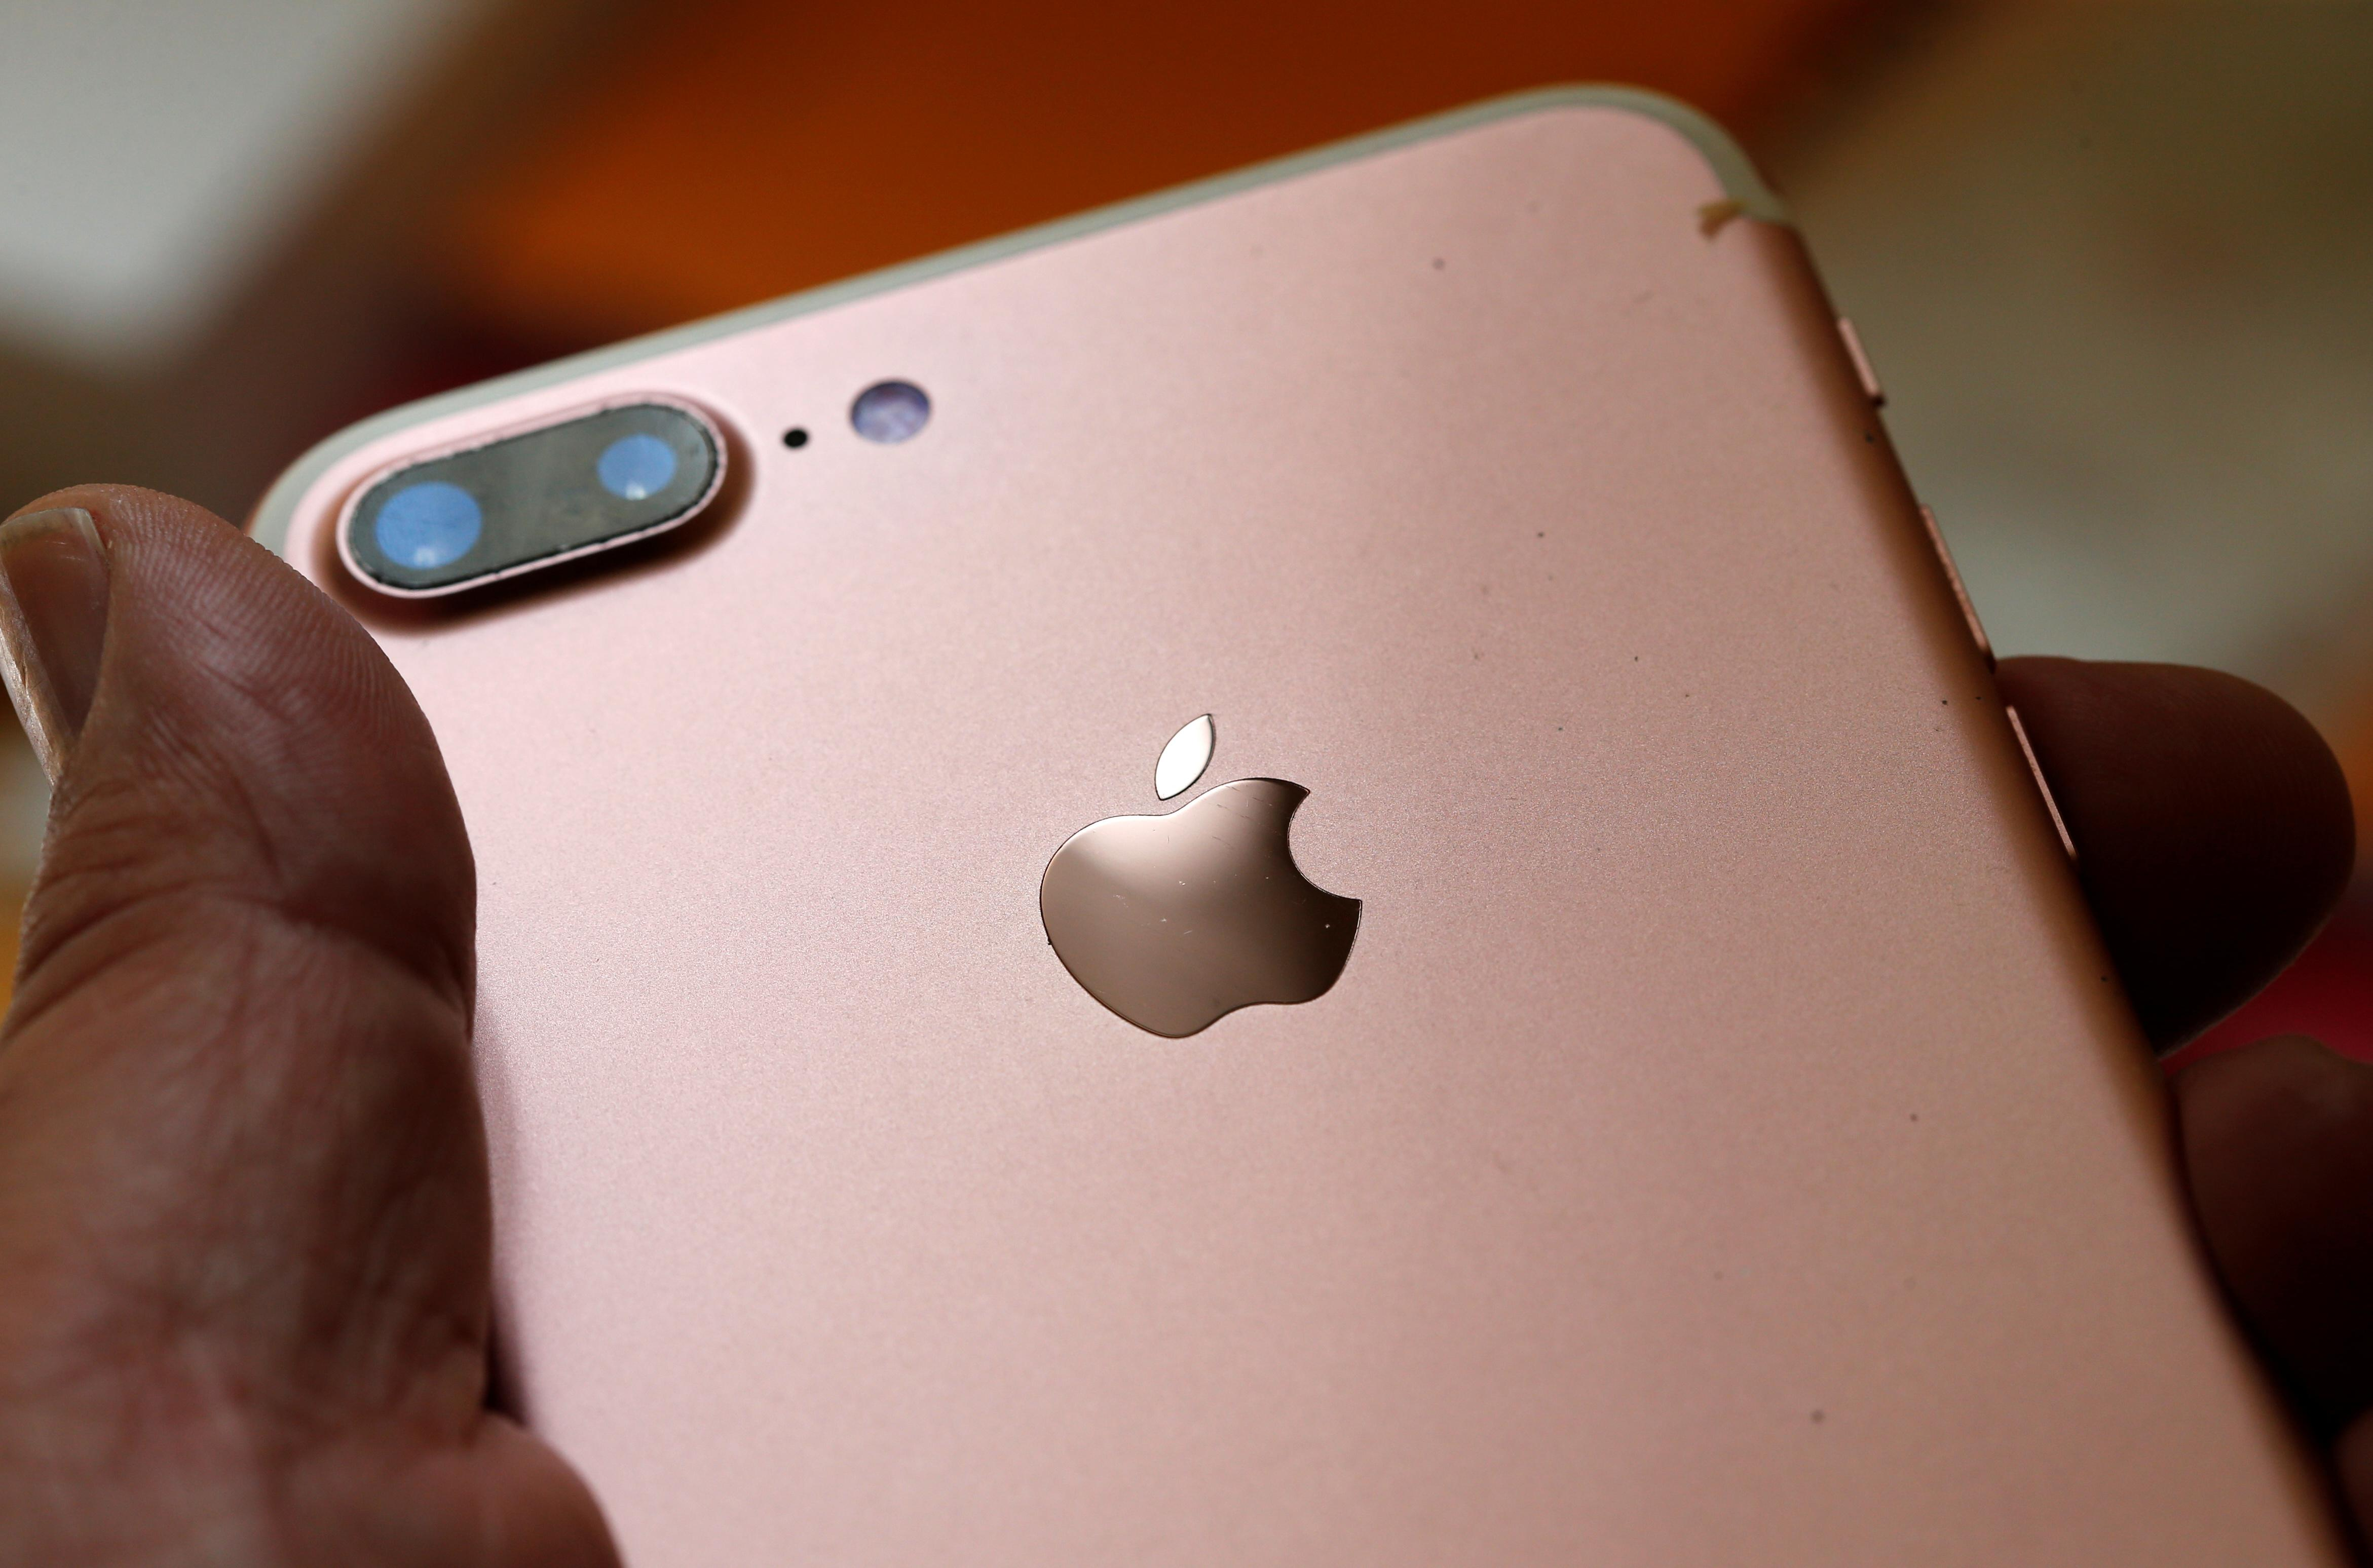 Apple offers $1 million incentive to hackers